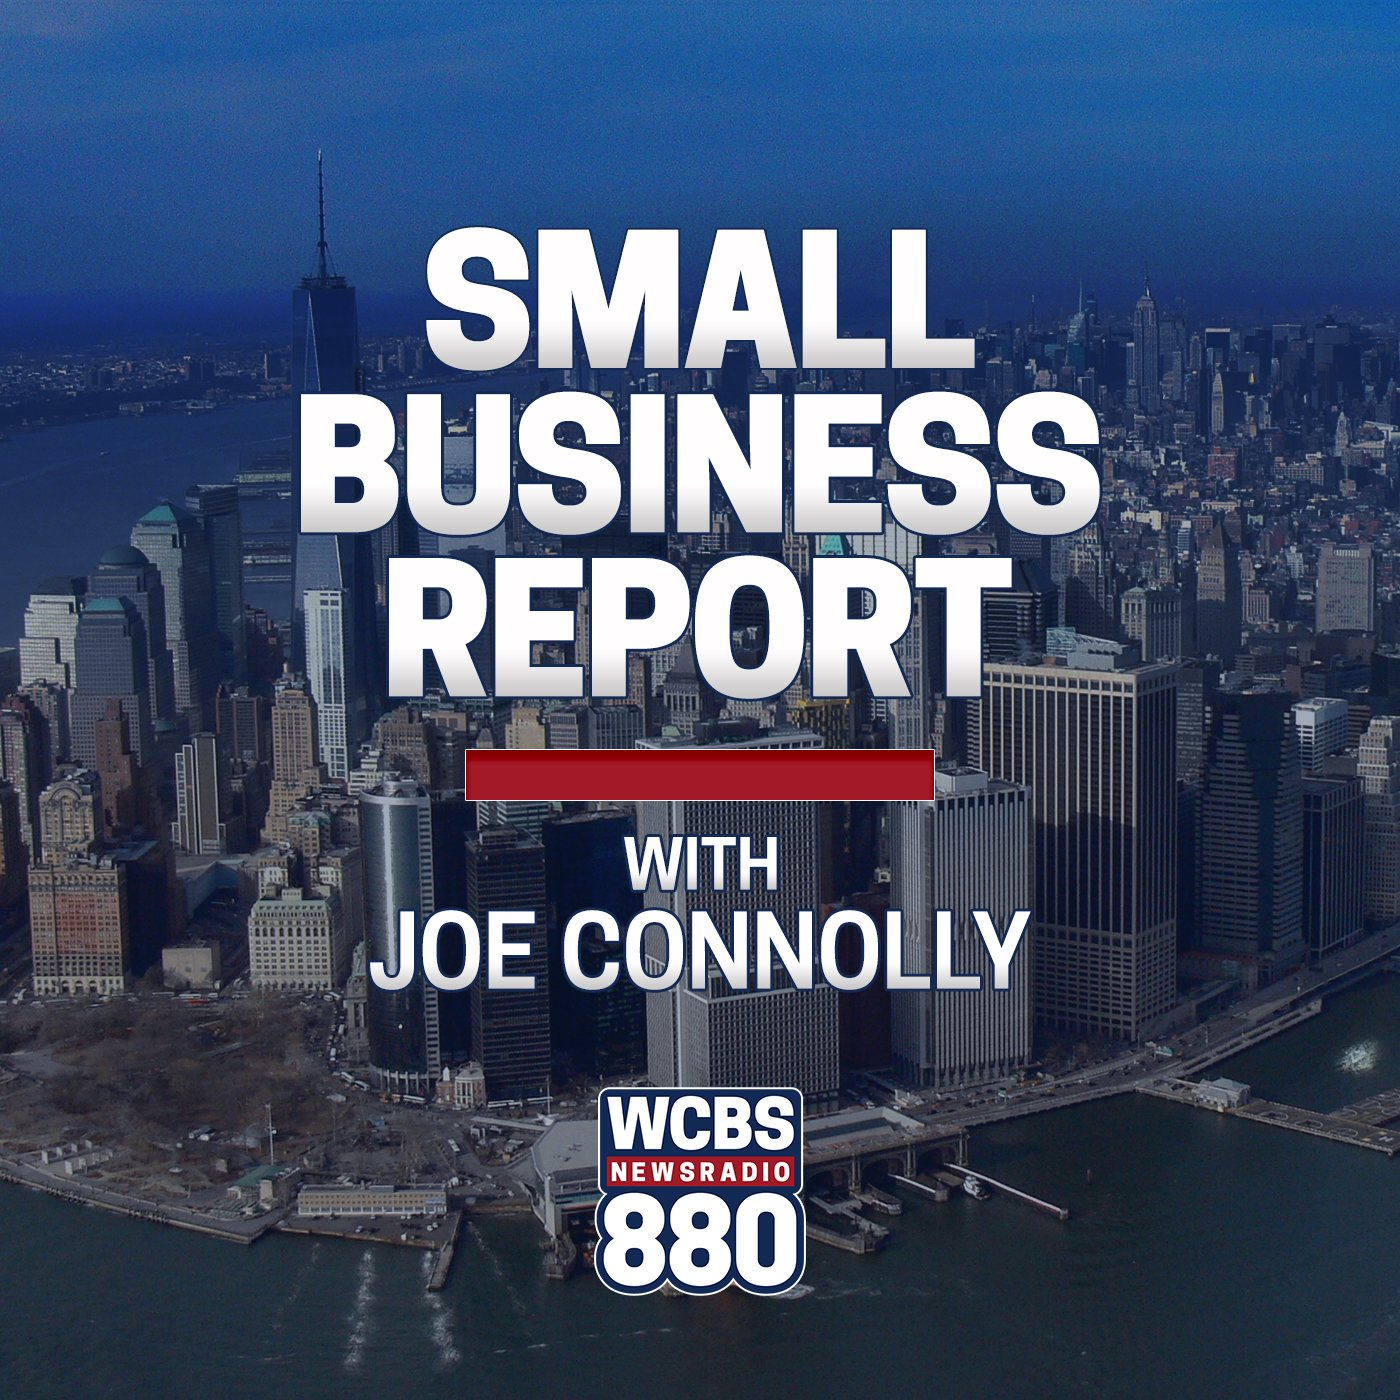 Small Business Report with Joe Connolly